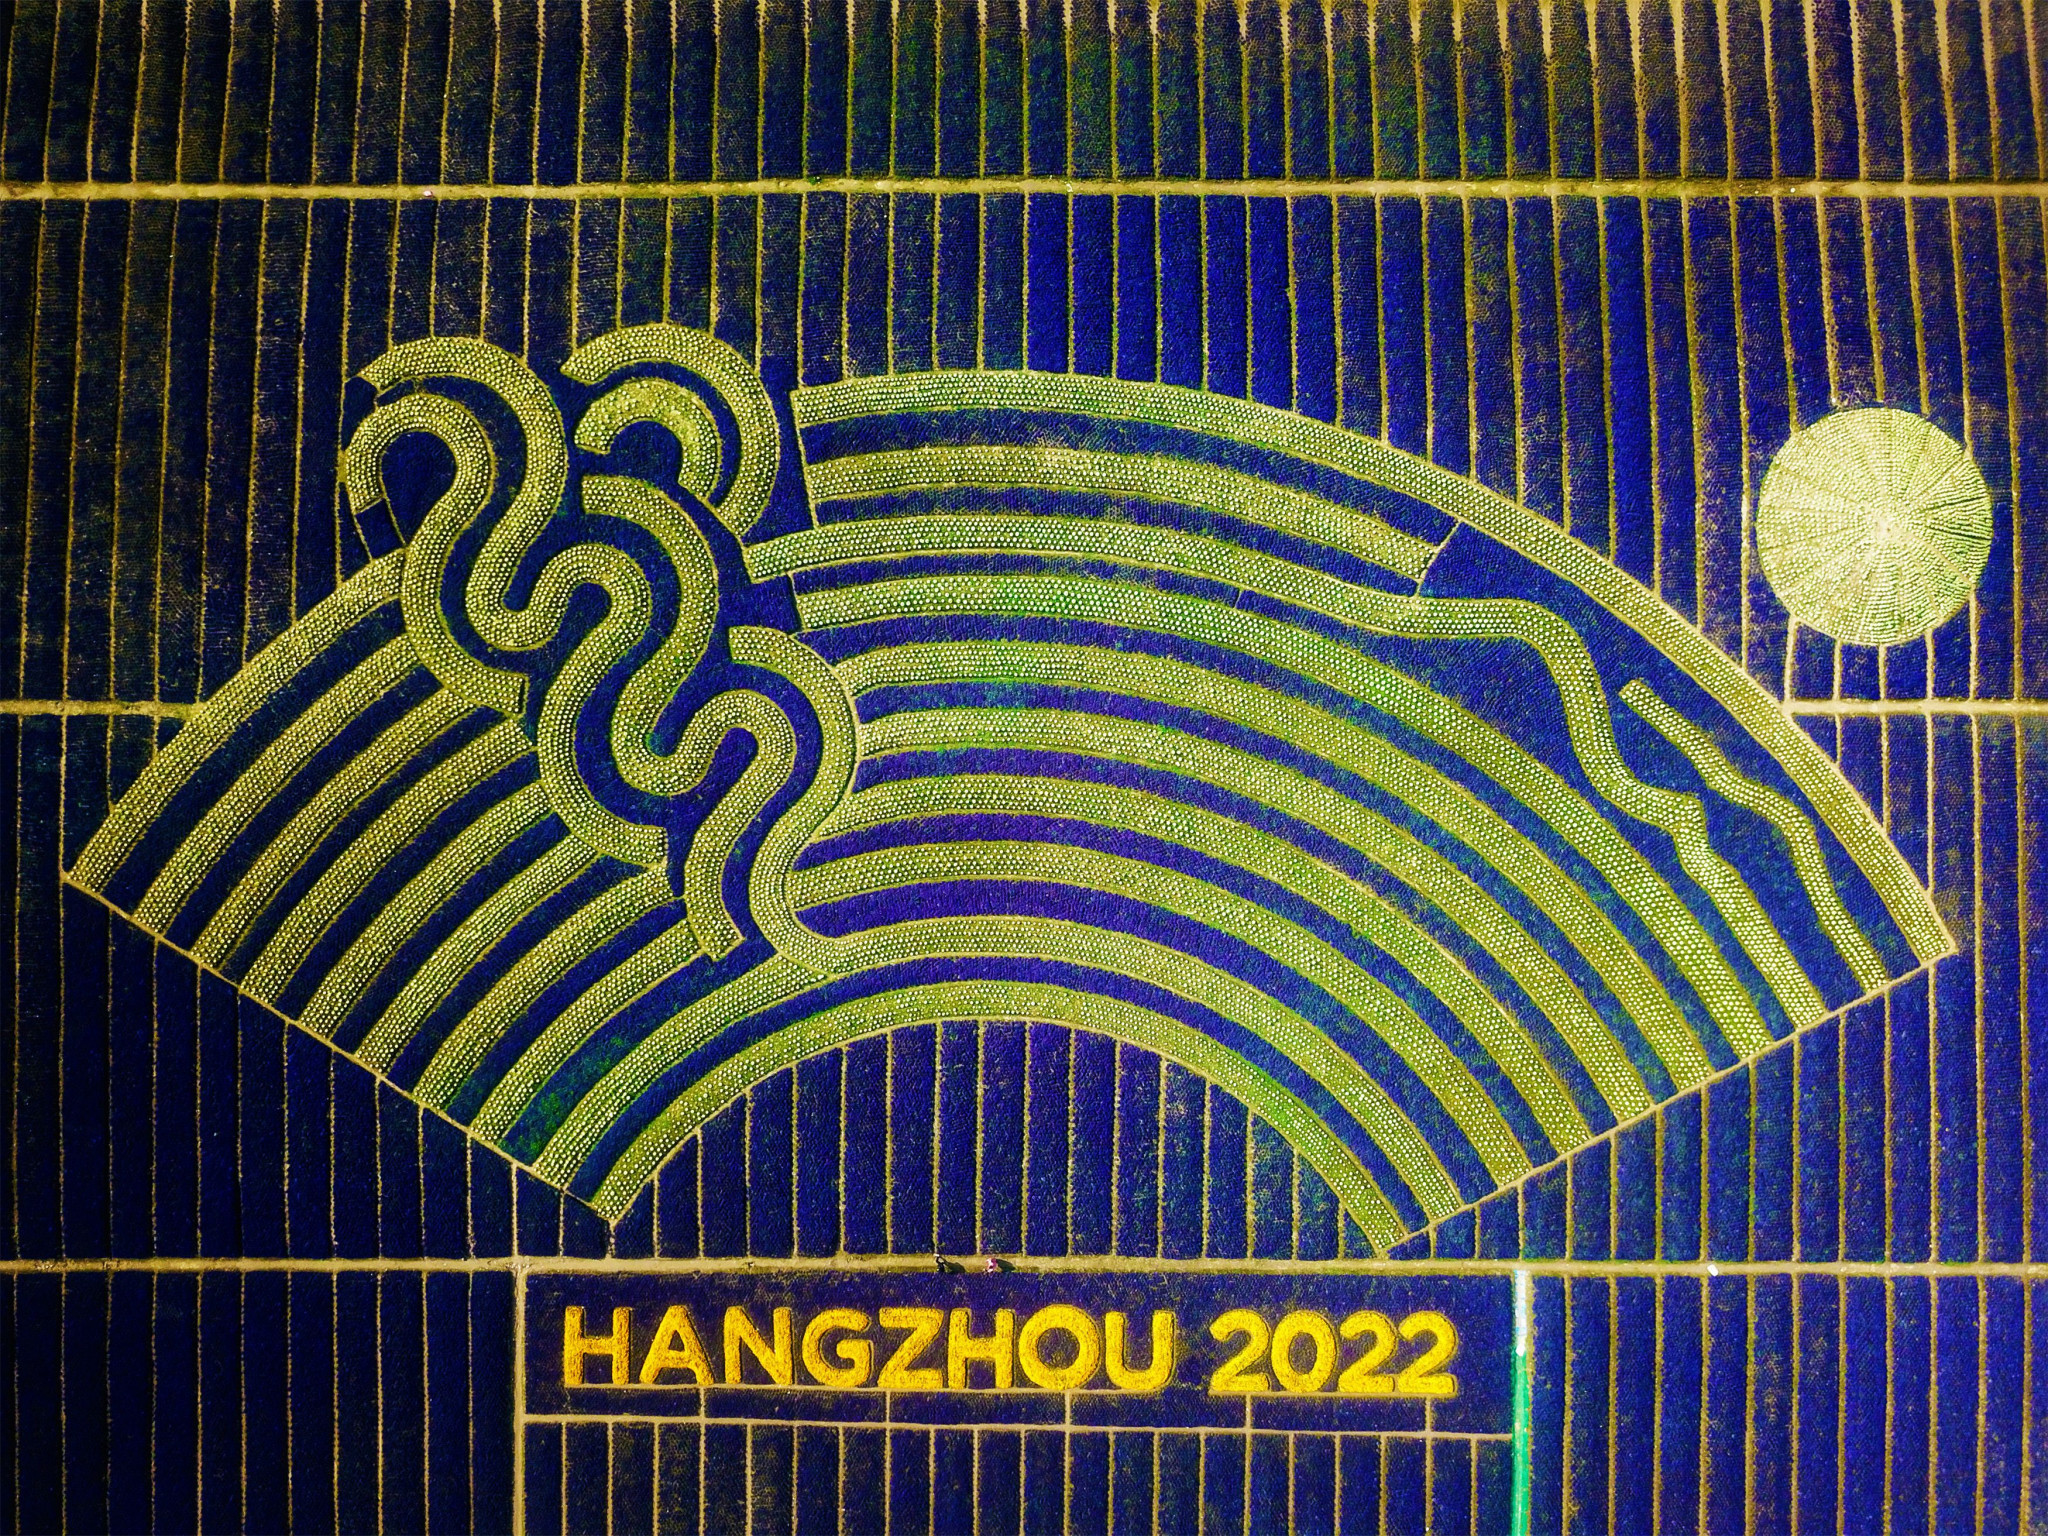 Hangzhou 2022 Opening and Closing Ceremony venue earns construction accolade